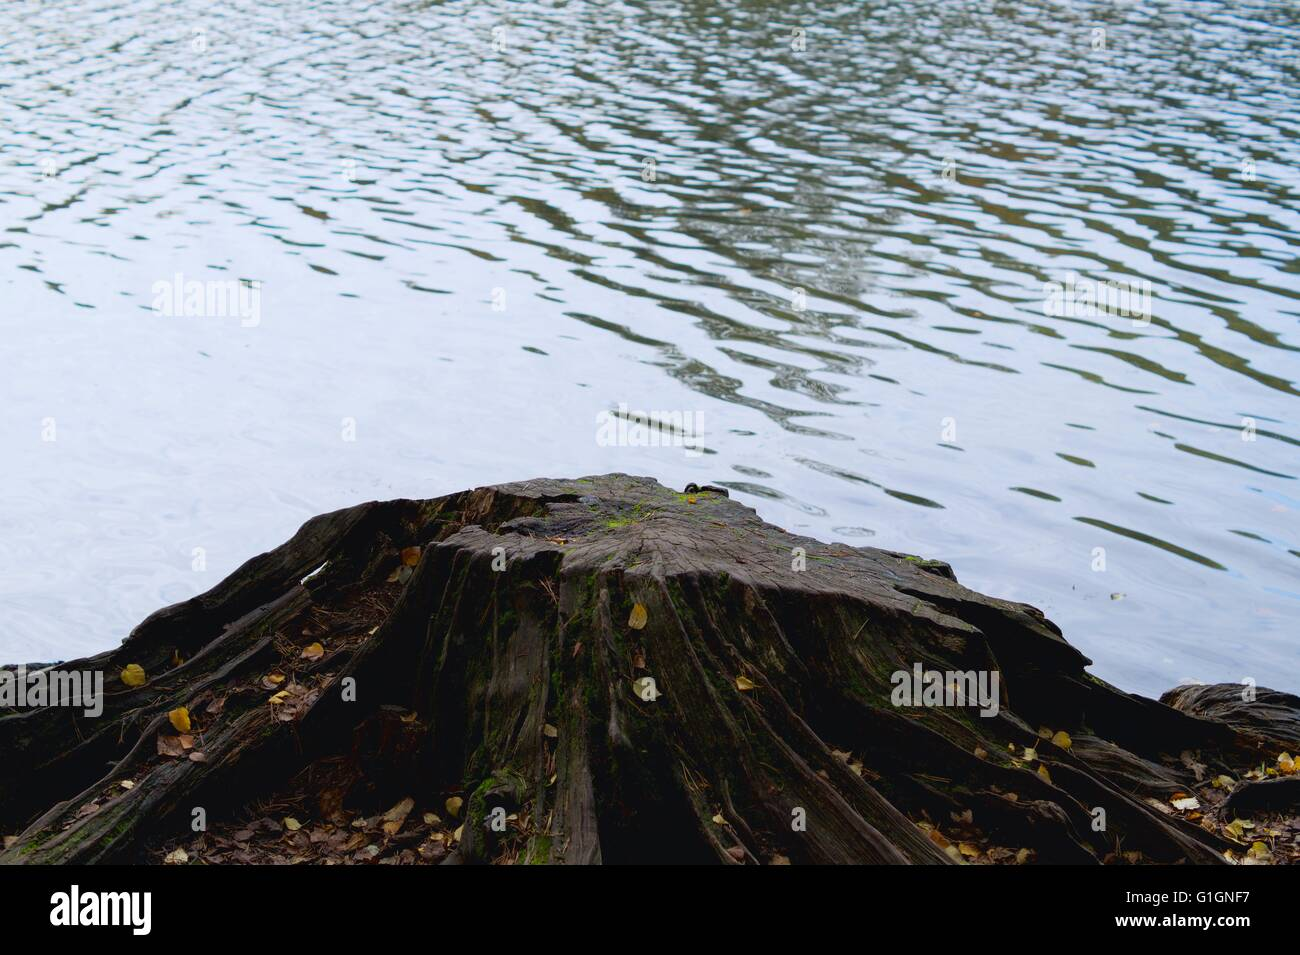 Tree stump with water rippling behind - Stock Image